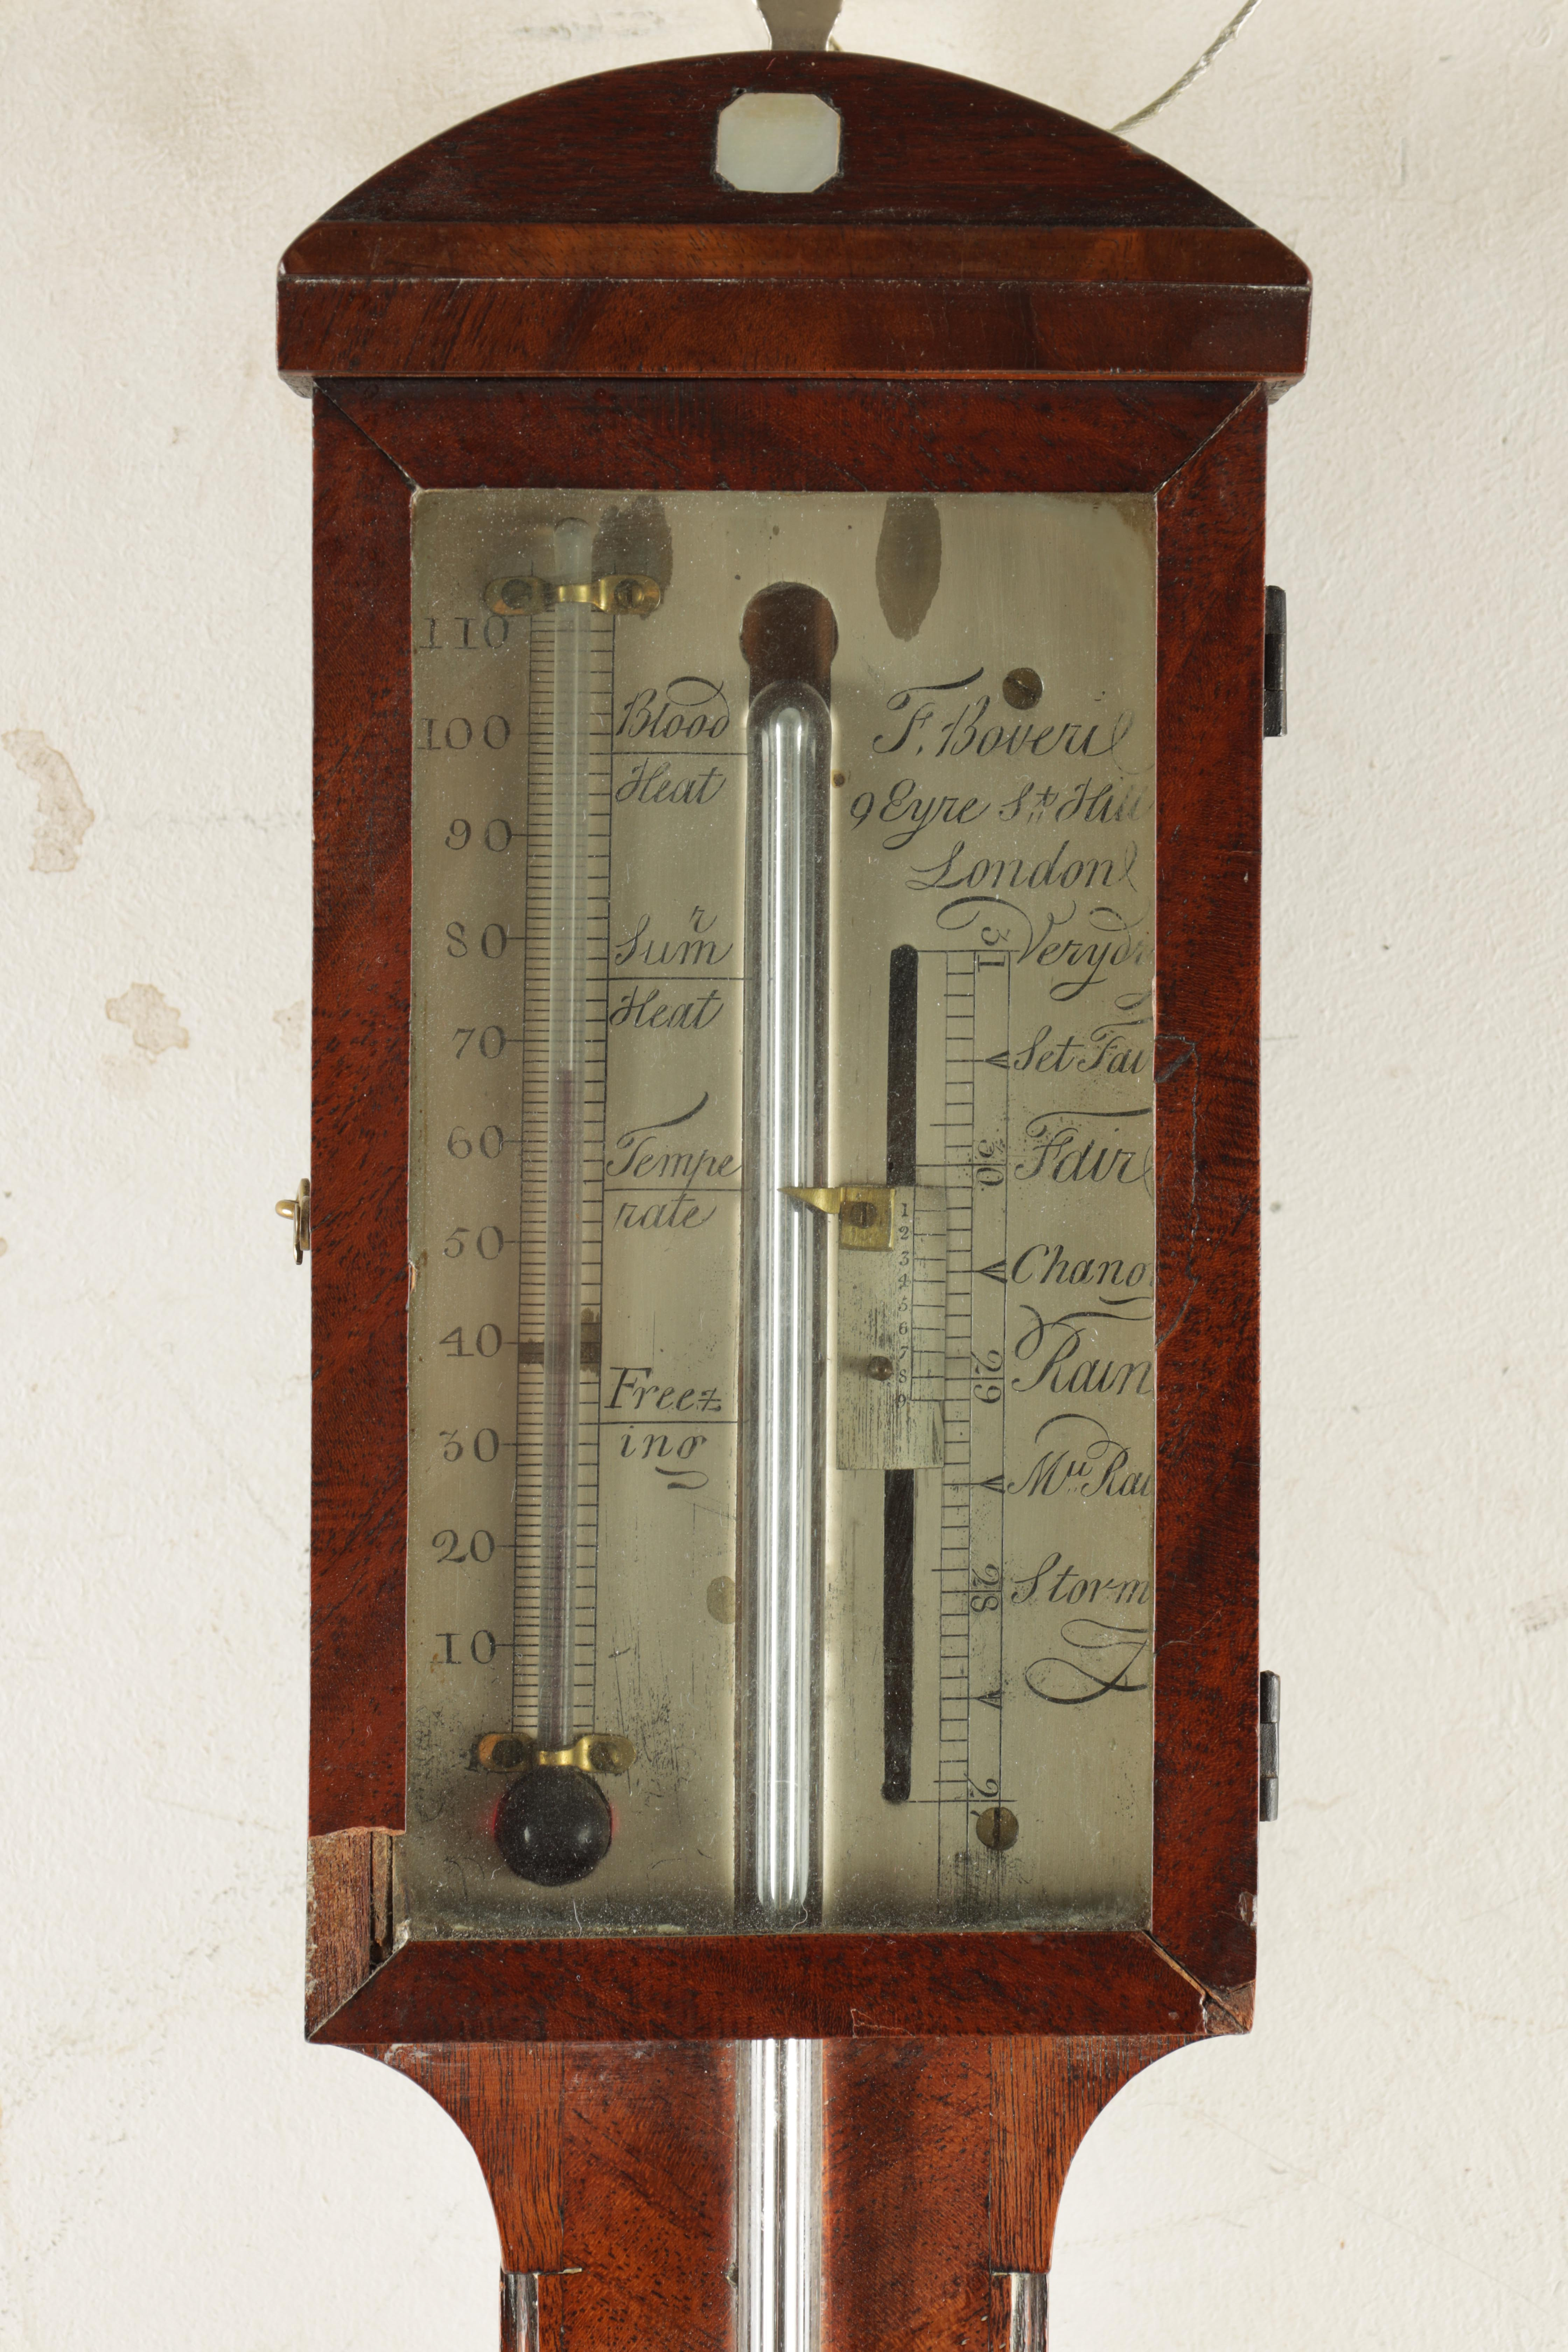 F. BOVERIL, 9 EYRE STREET, HILL, LONDON A GEORGE III MAHOGANY STICK BAROMETER the case with arched - Image 4 of 6